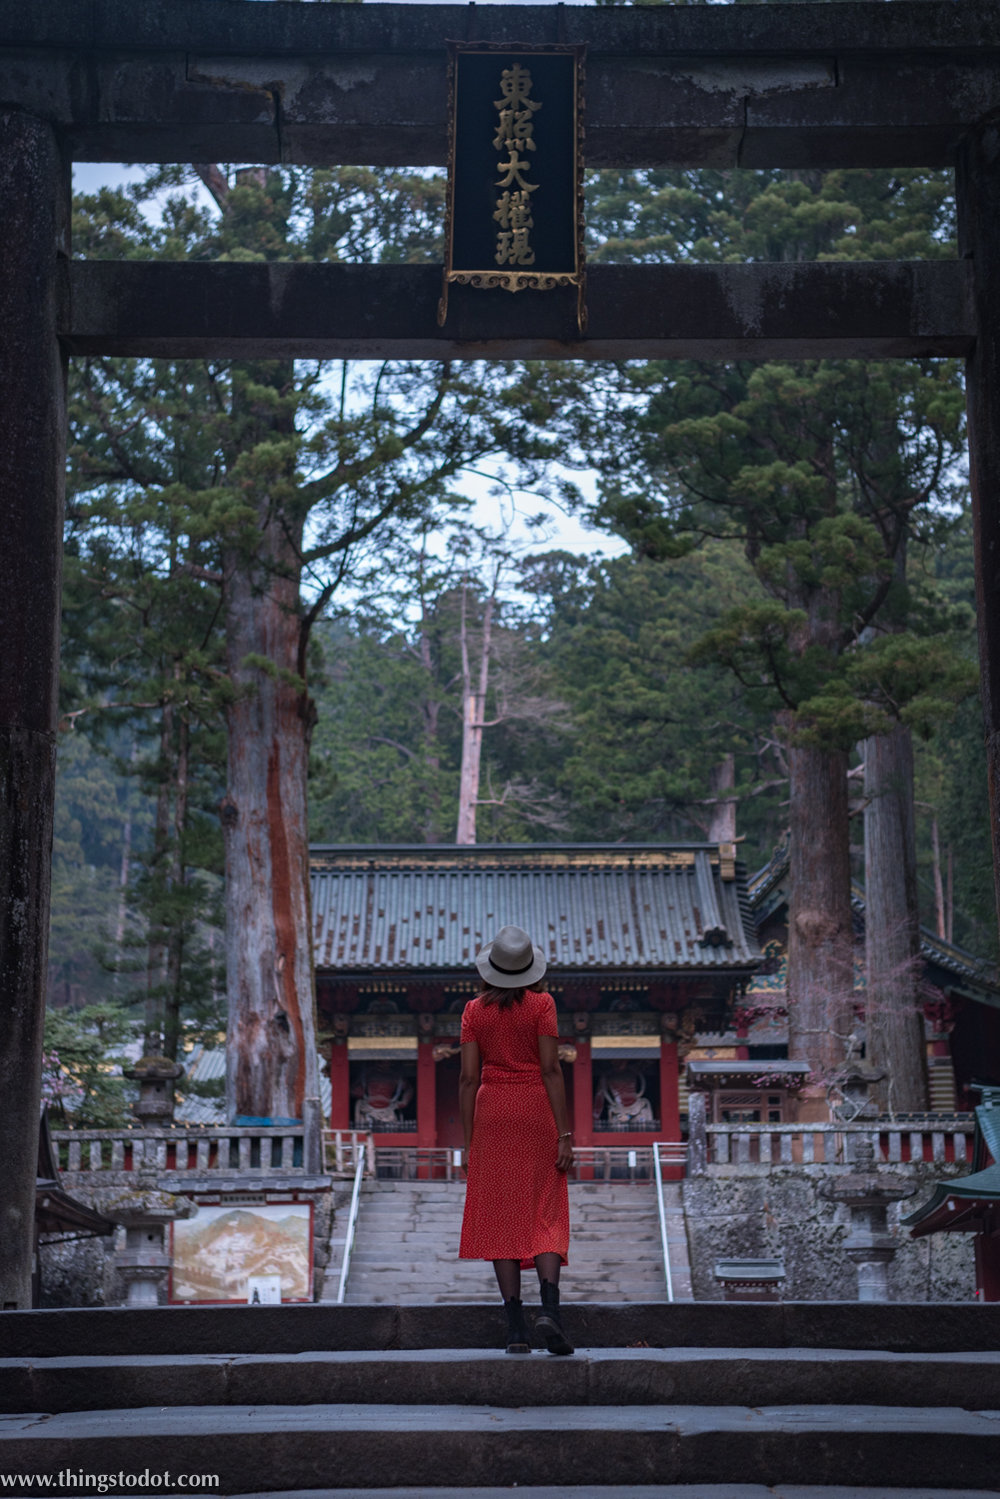 Toshogu Shrine, Nikko, Japan. Image©www.thingstodot.com. Photo: Yuga Kurita.